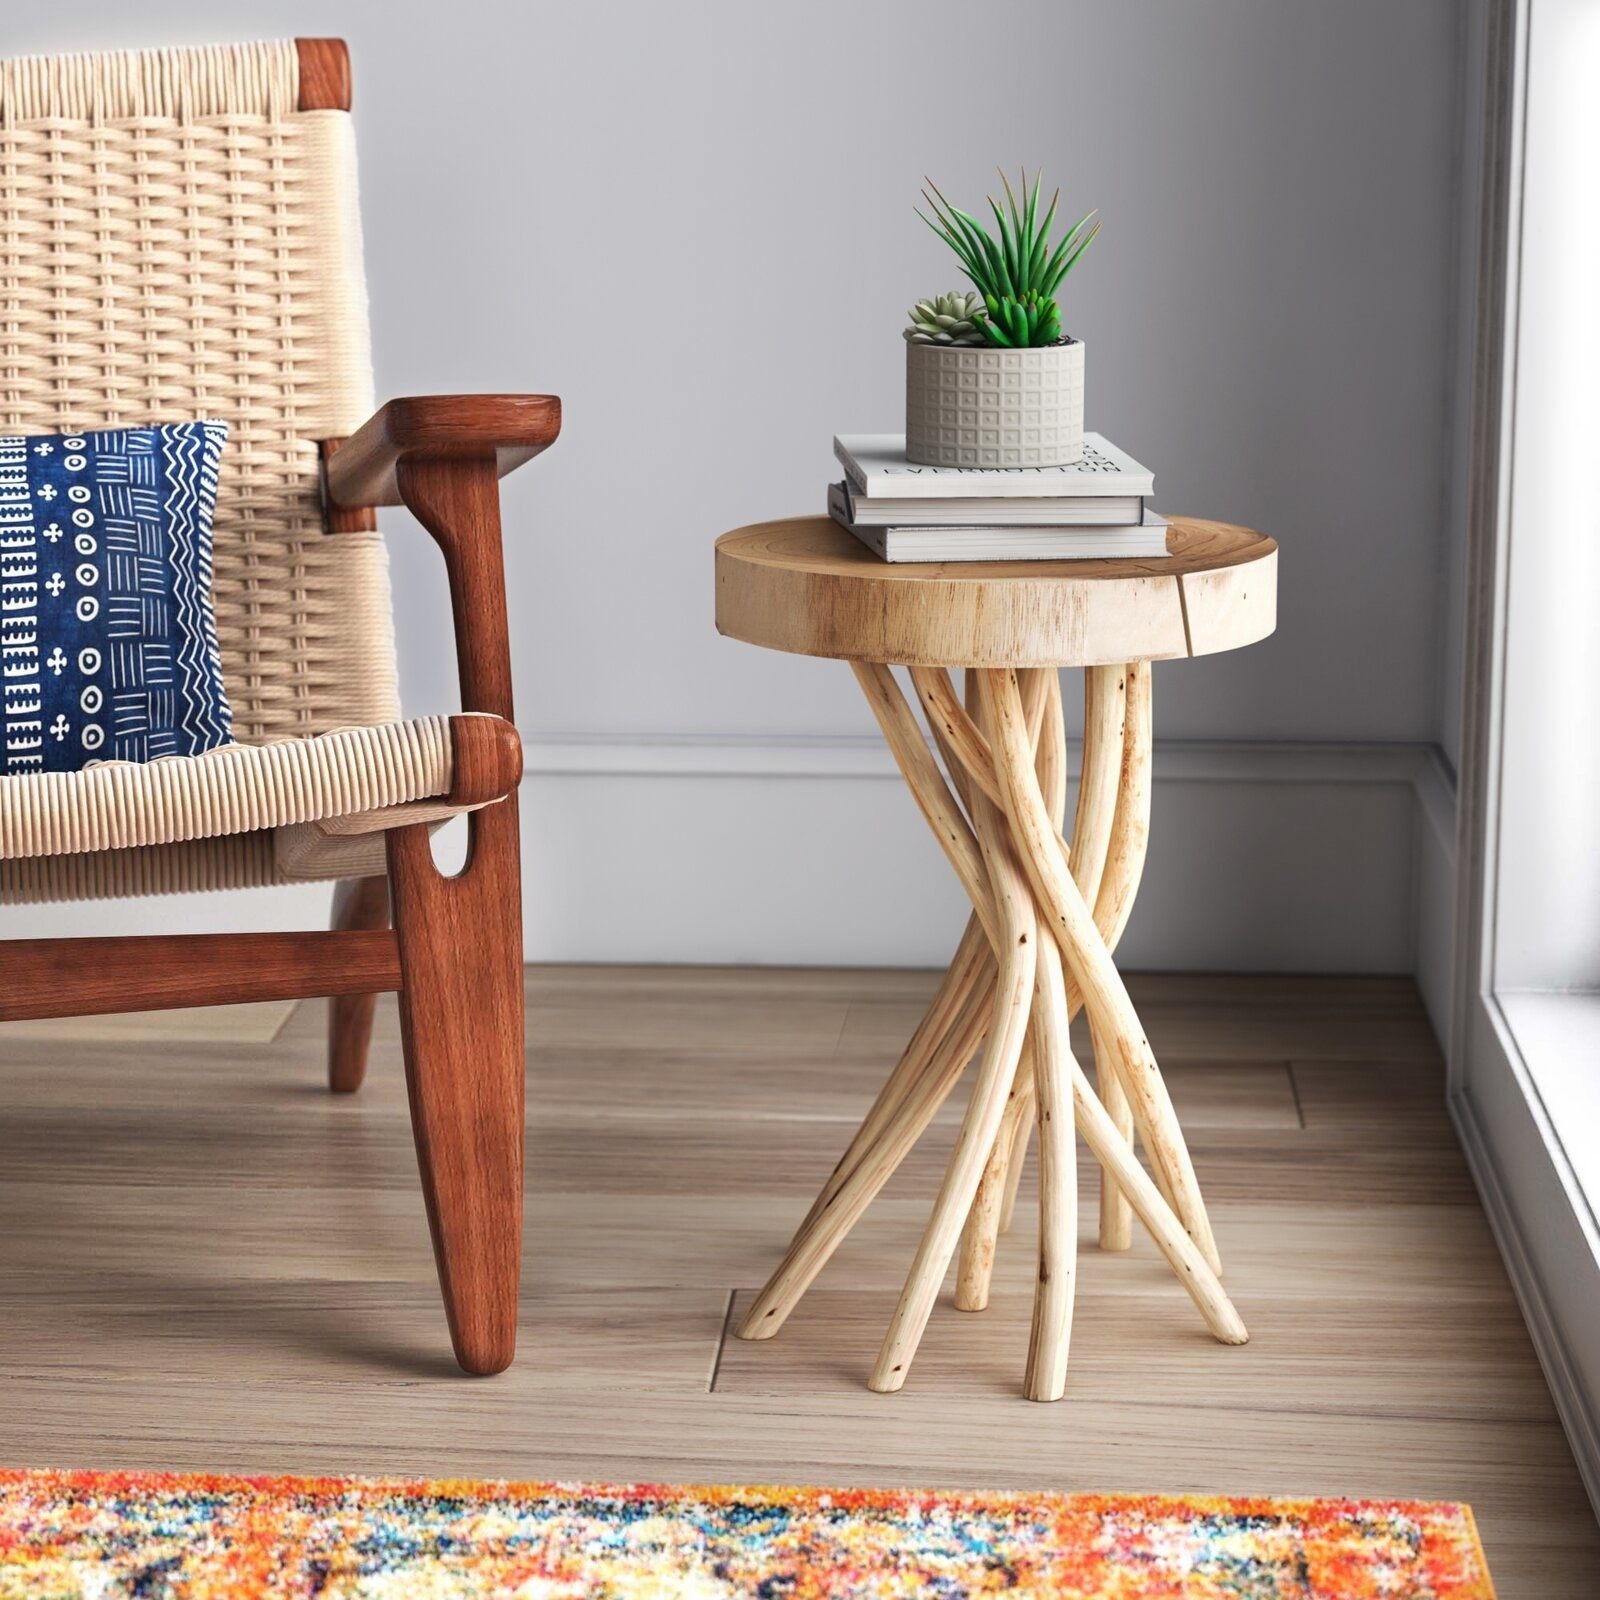 The wooden side table with tree-like woven legs